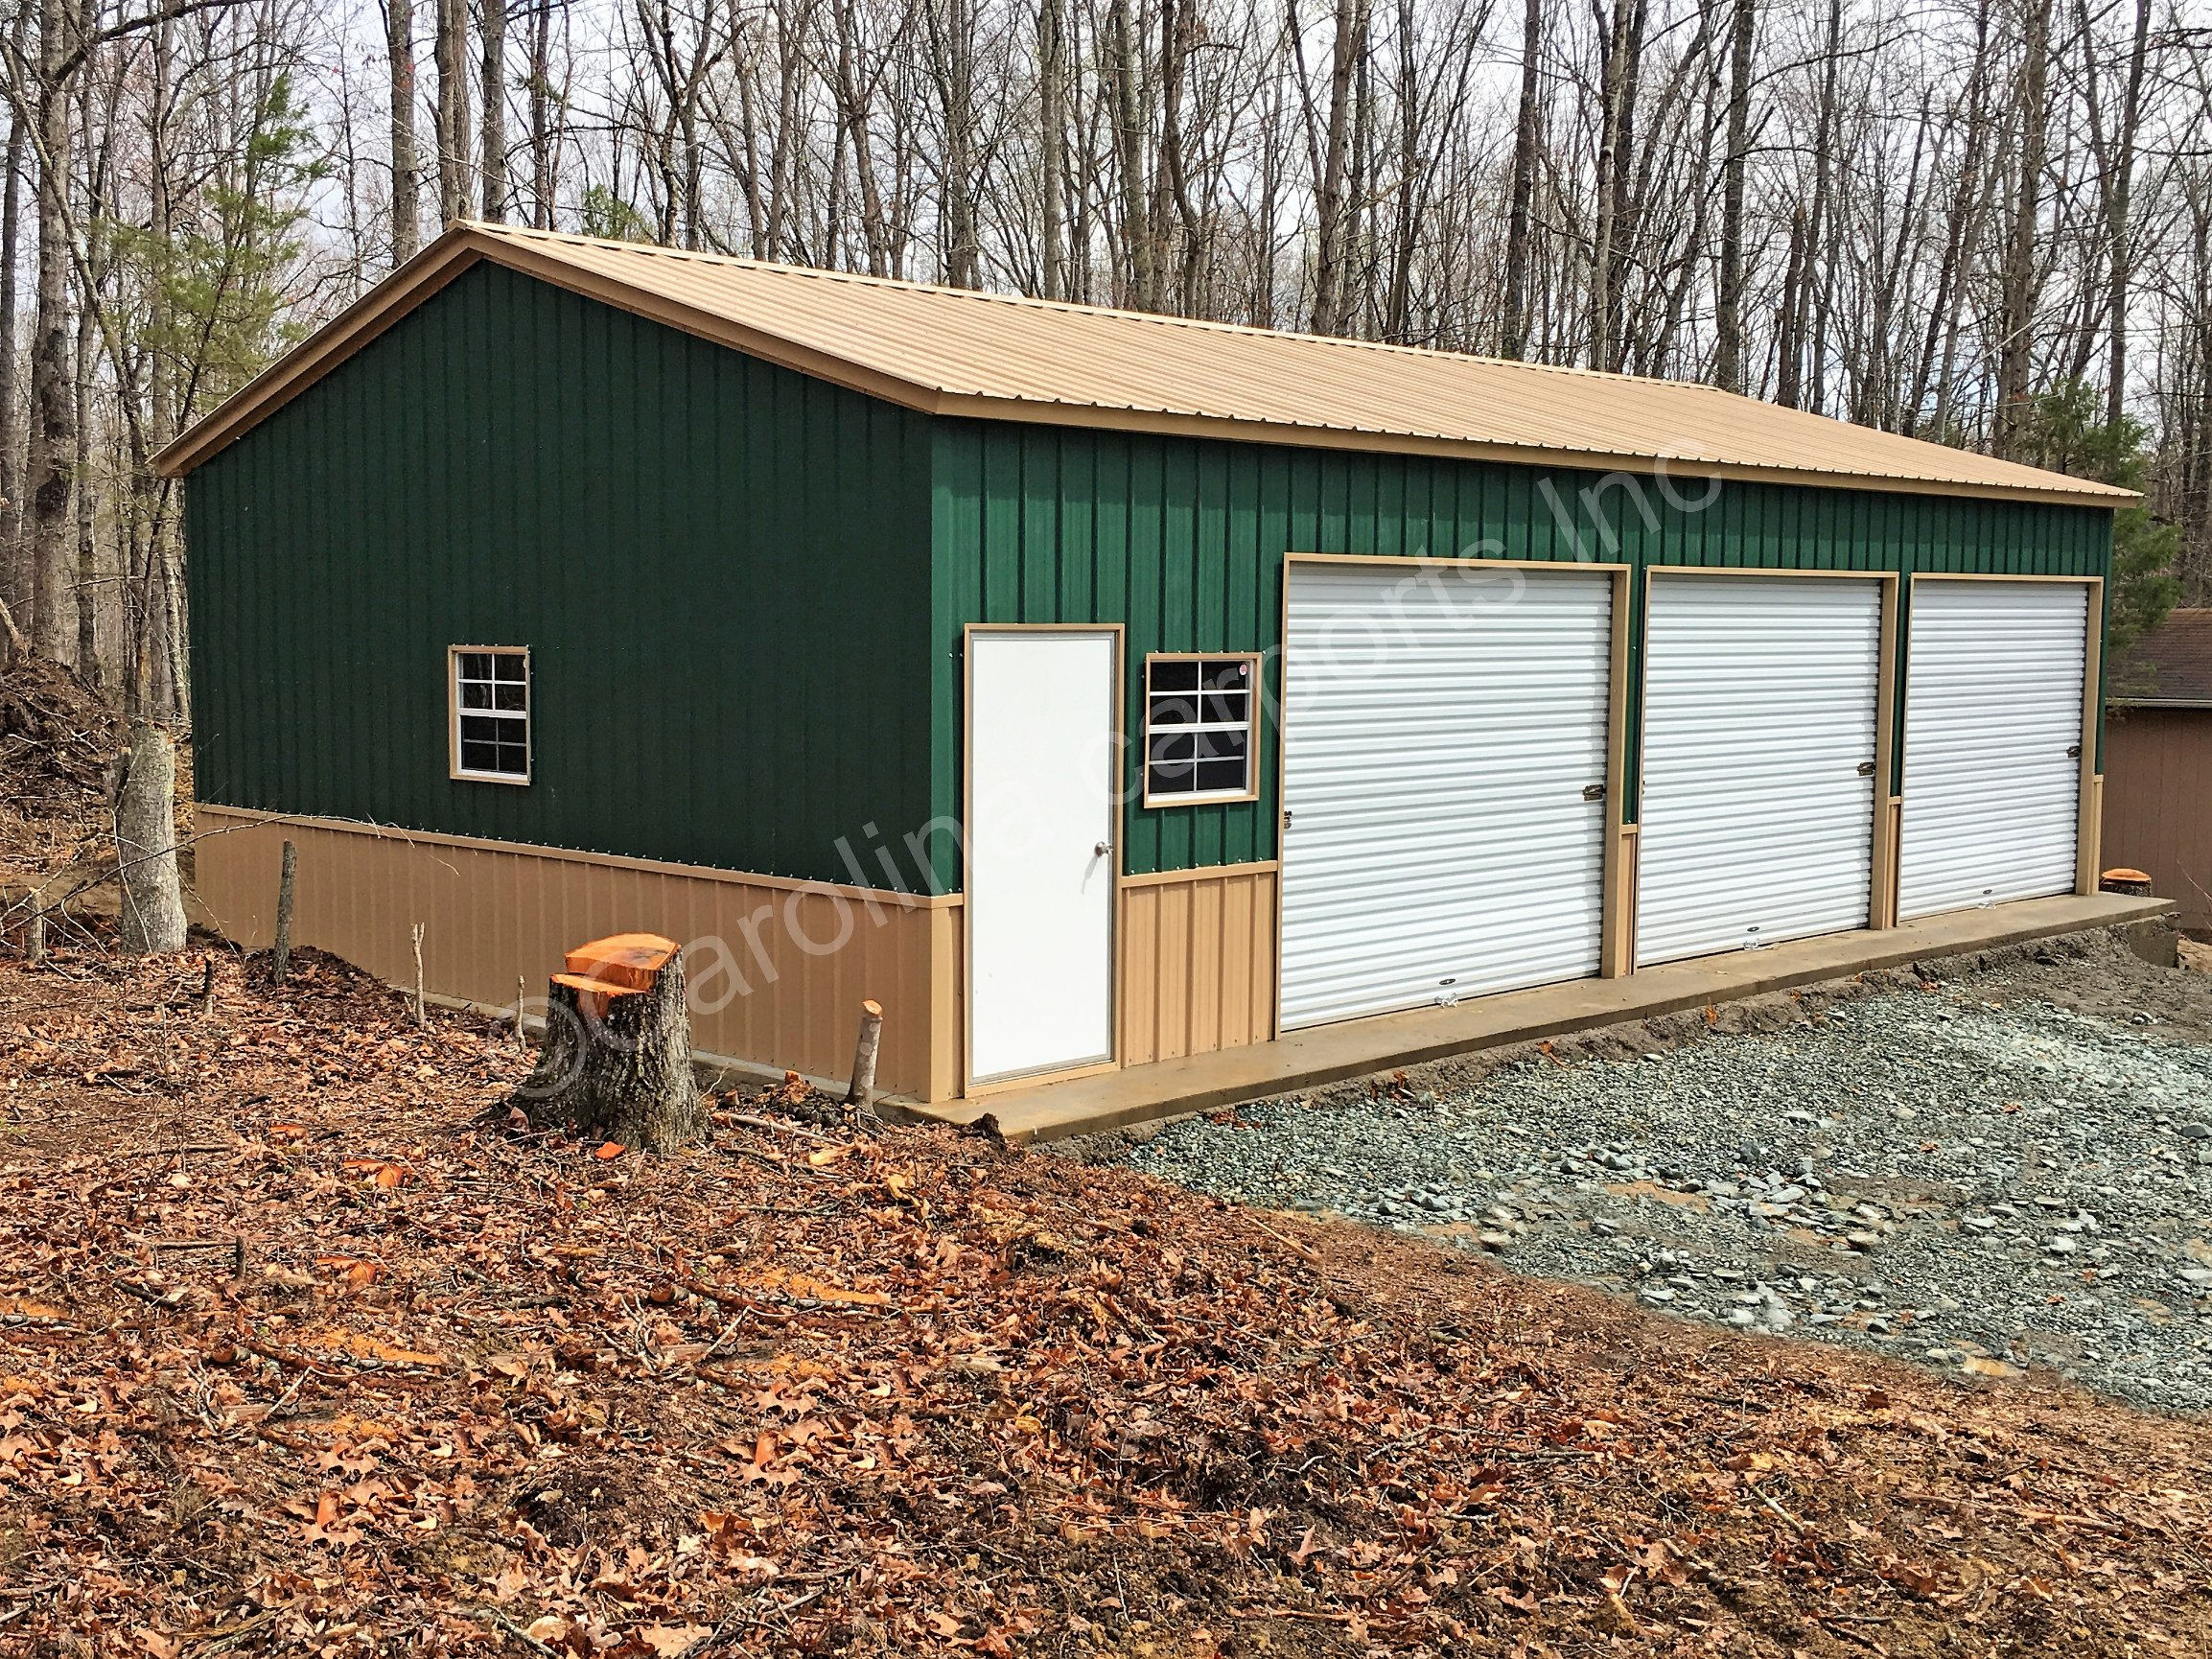 barn sturdi discount chicken bilt sale sheds storage inventory ad classic farmer for barns